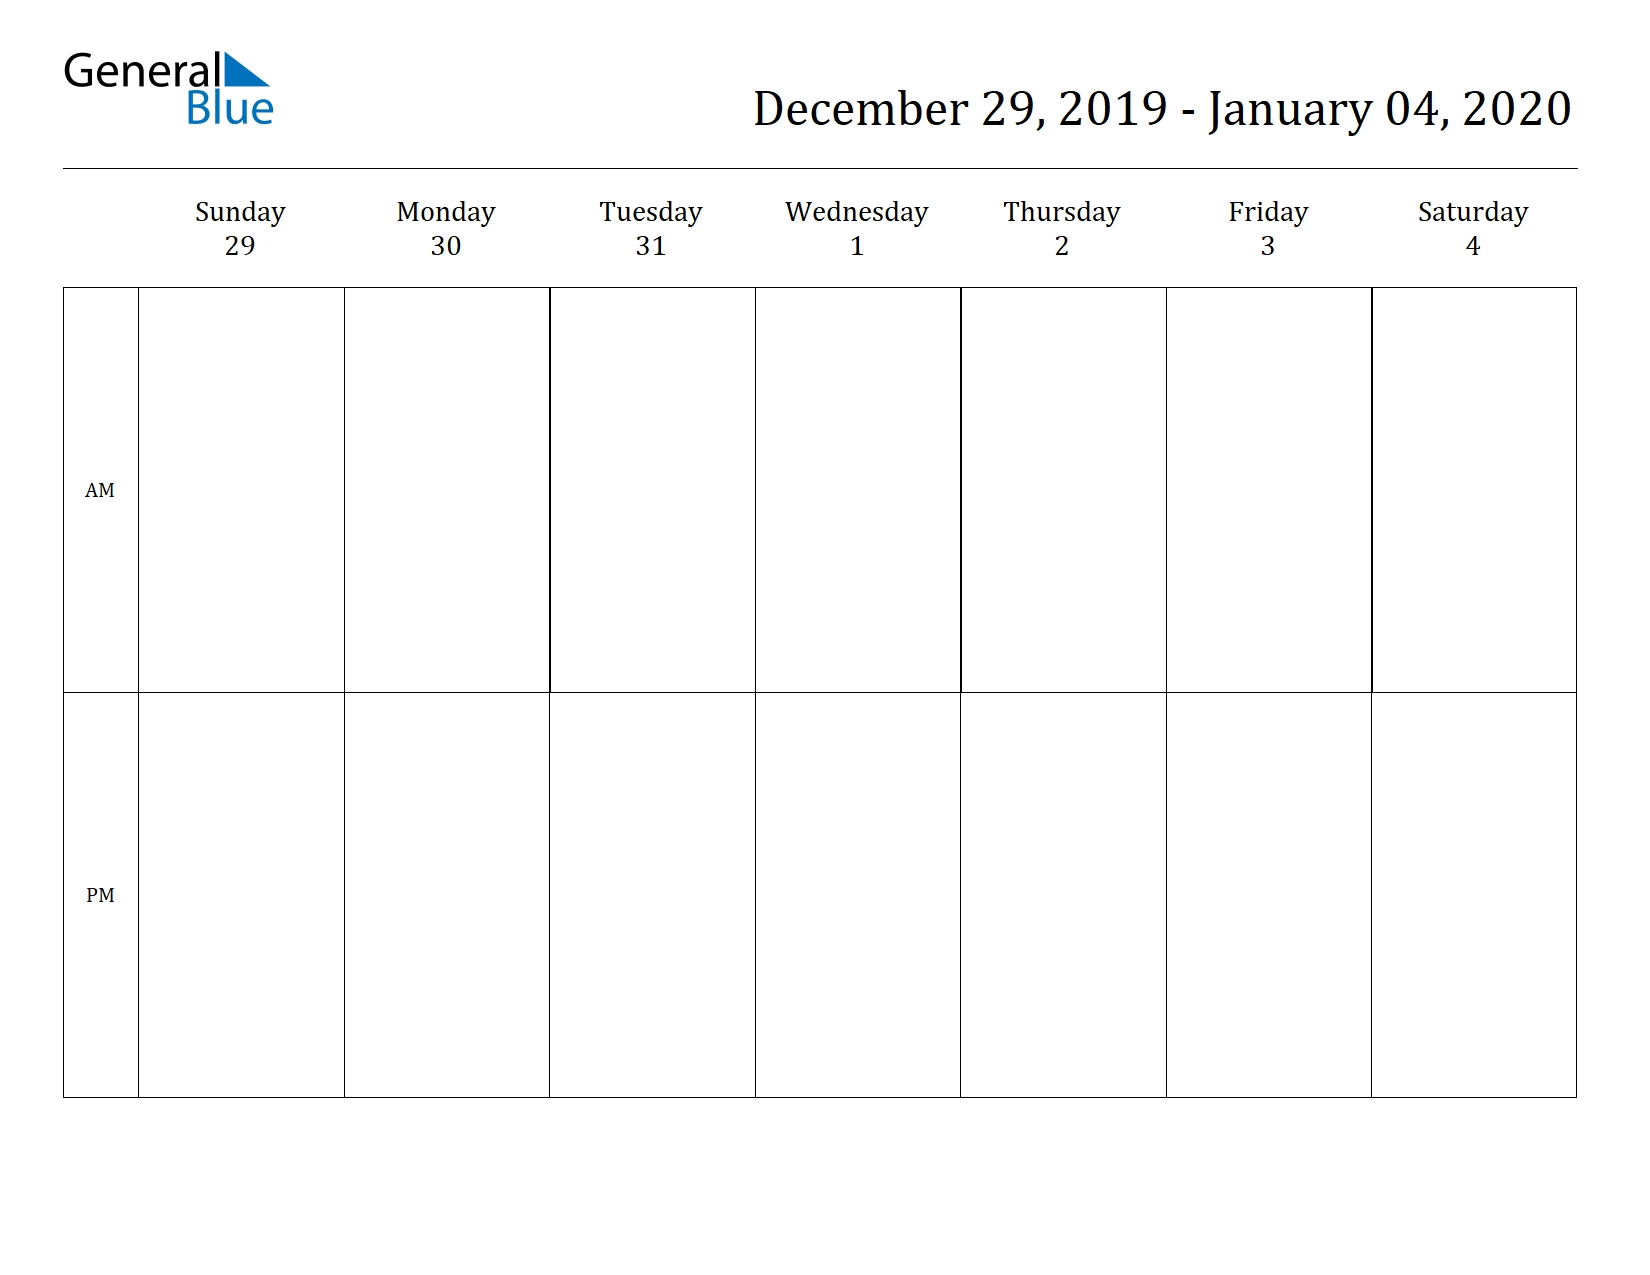 Free Printable Weekly Calendars For 2020 In Pdf Document Format within Calender For 2020 Week Wise